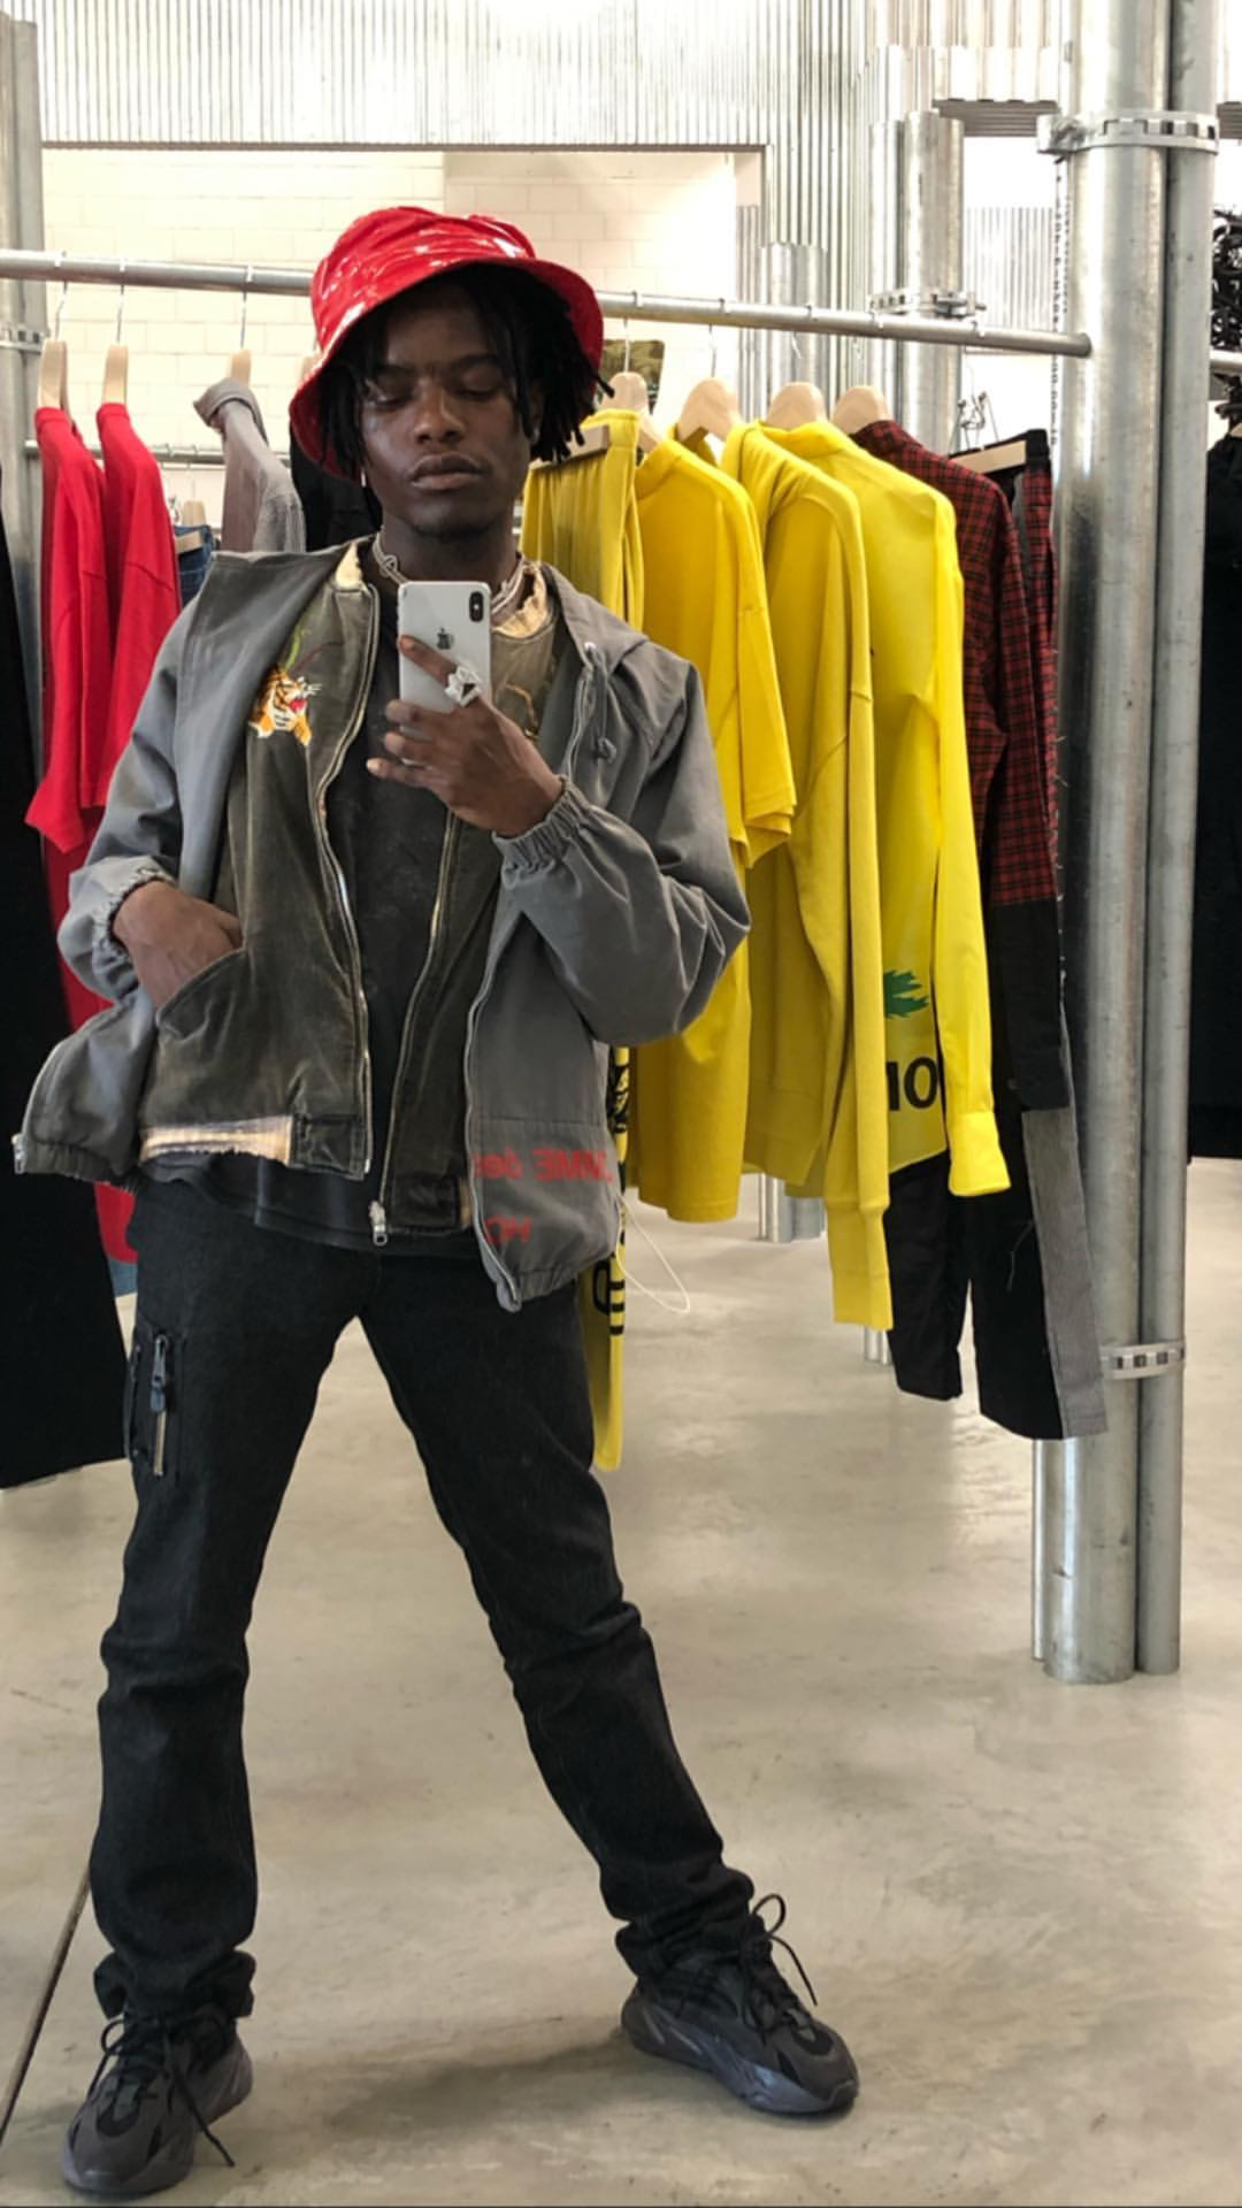 on sale 7230f 6e94c SPOTTED: Ian Connor in Unreleased YEEZY 700 Sneakers – PAUSE ...